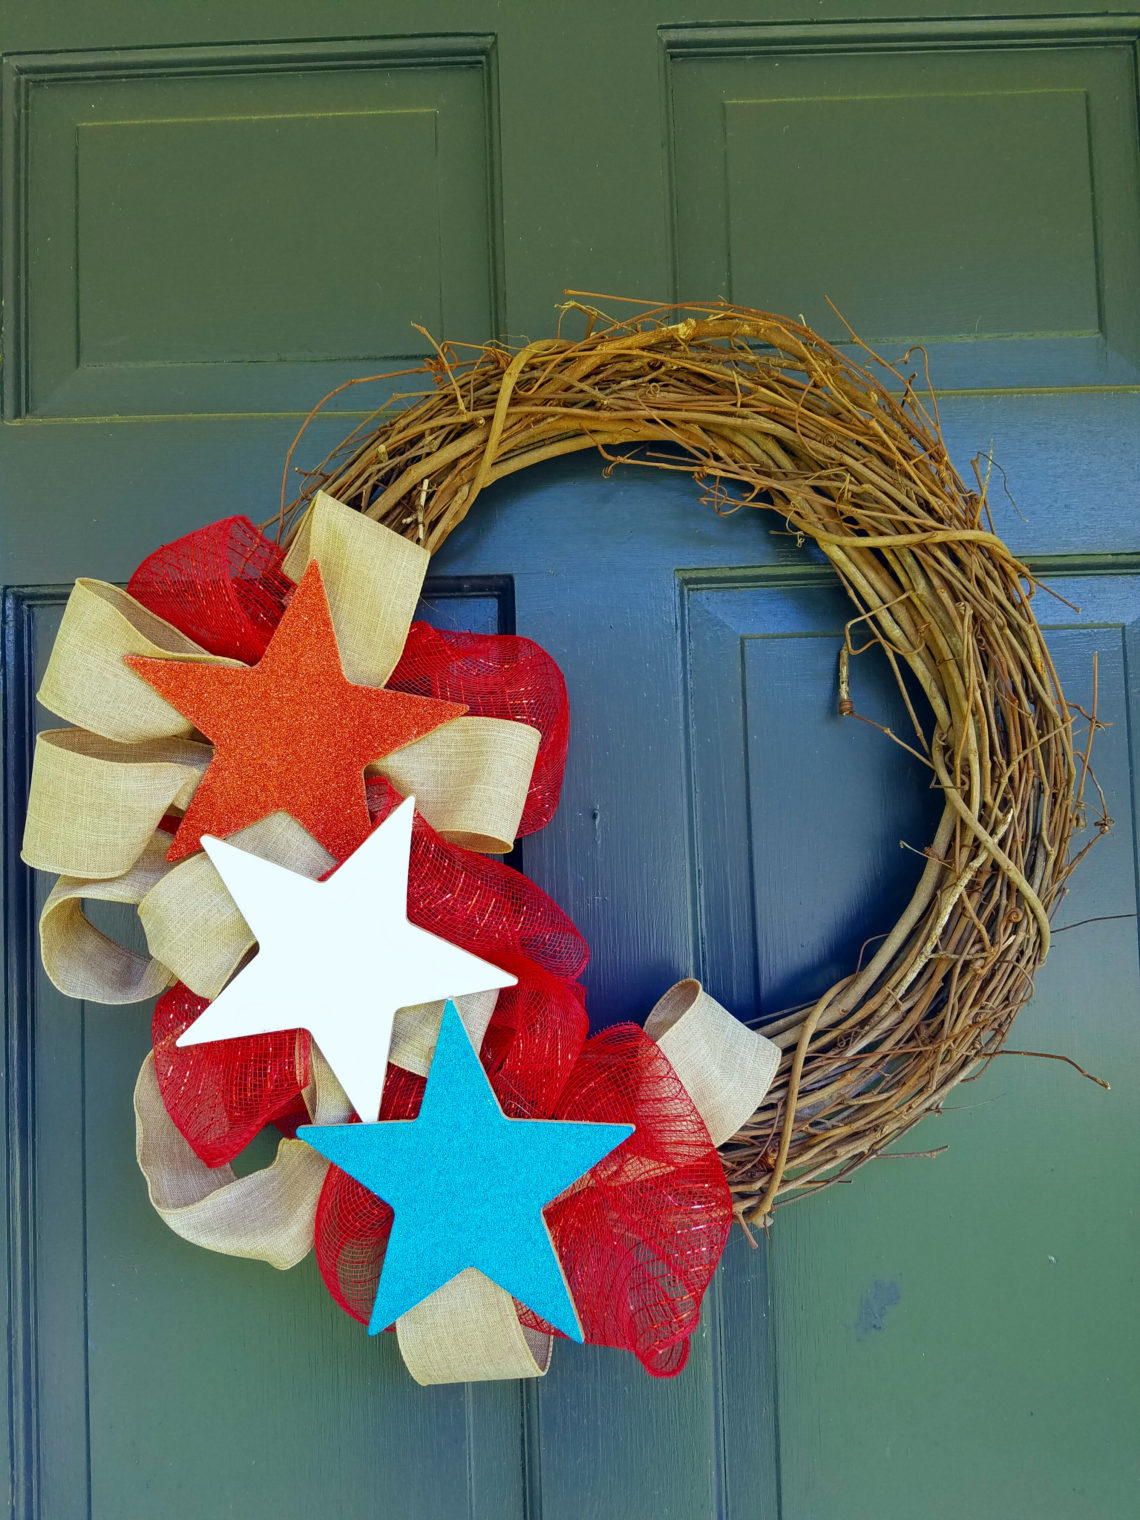 red, white, and blue stars on a grapevine wreath for the 4th of July